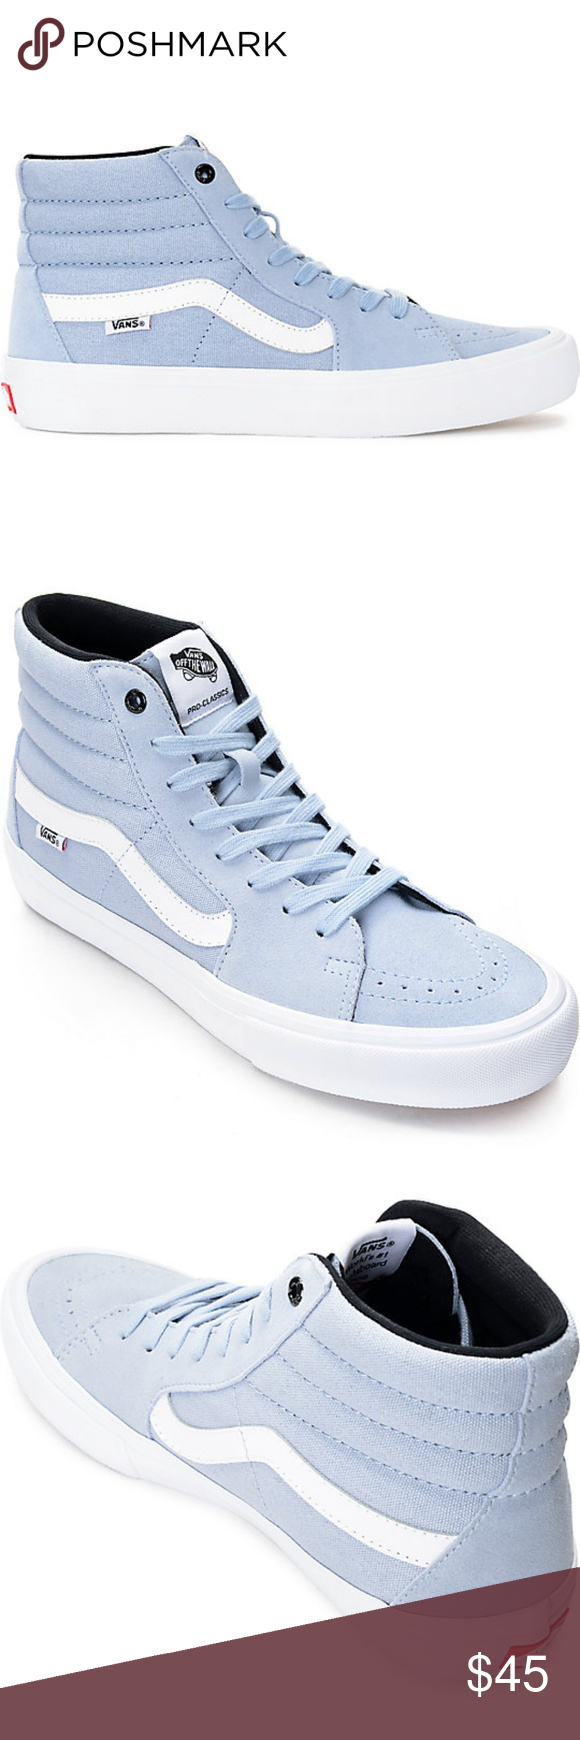 102724713bf501 Vans Sk8-Hi Pro Blue Fog Skate Shoes Men s Sz 10  New no box